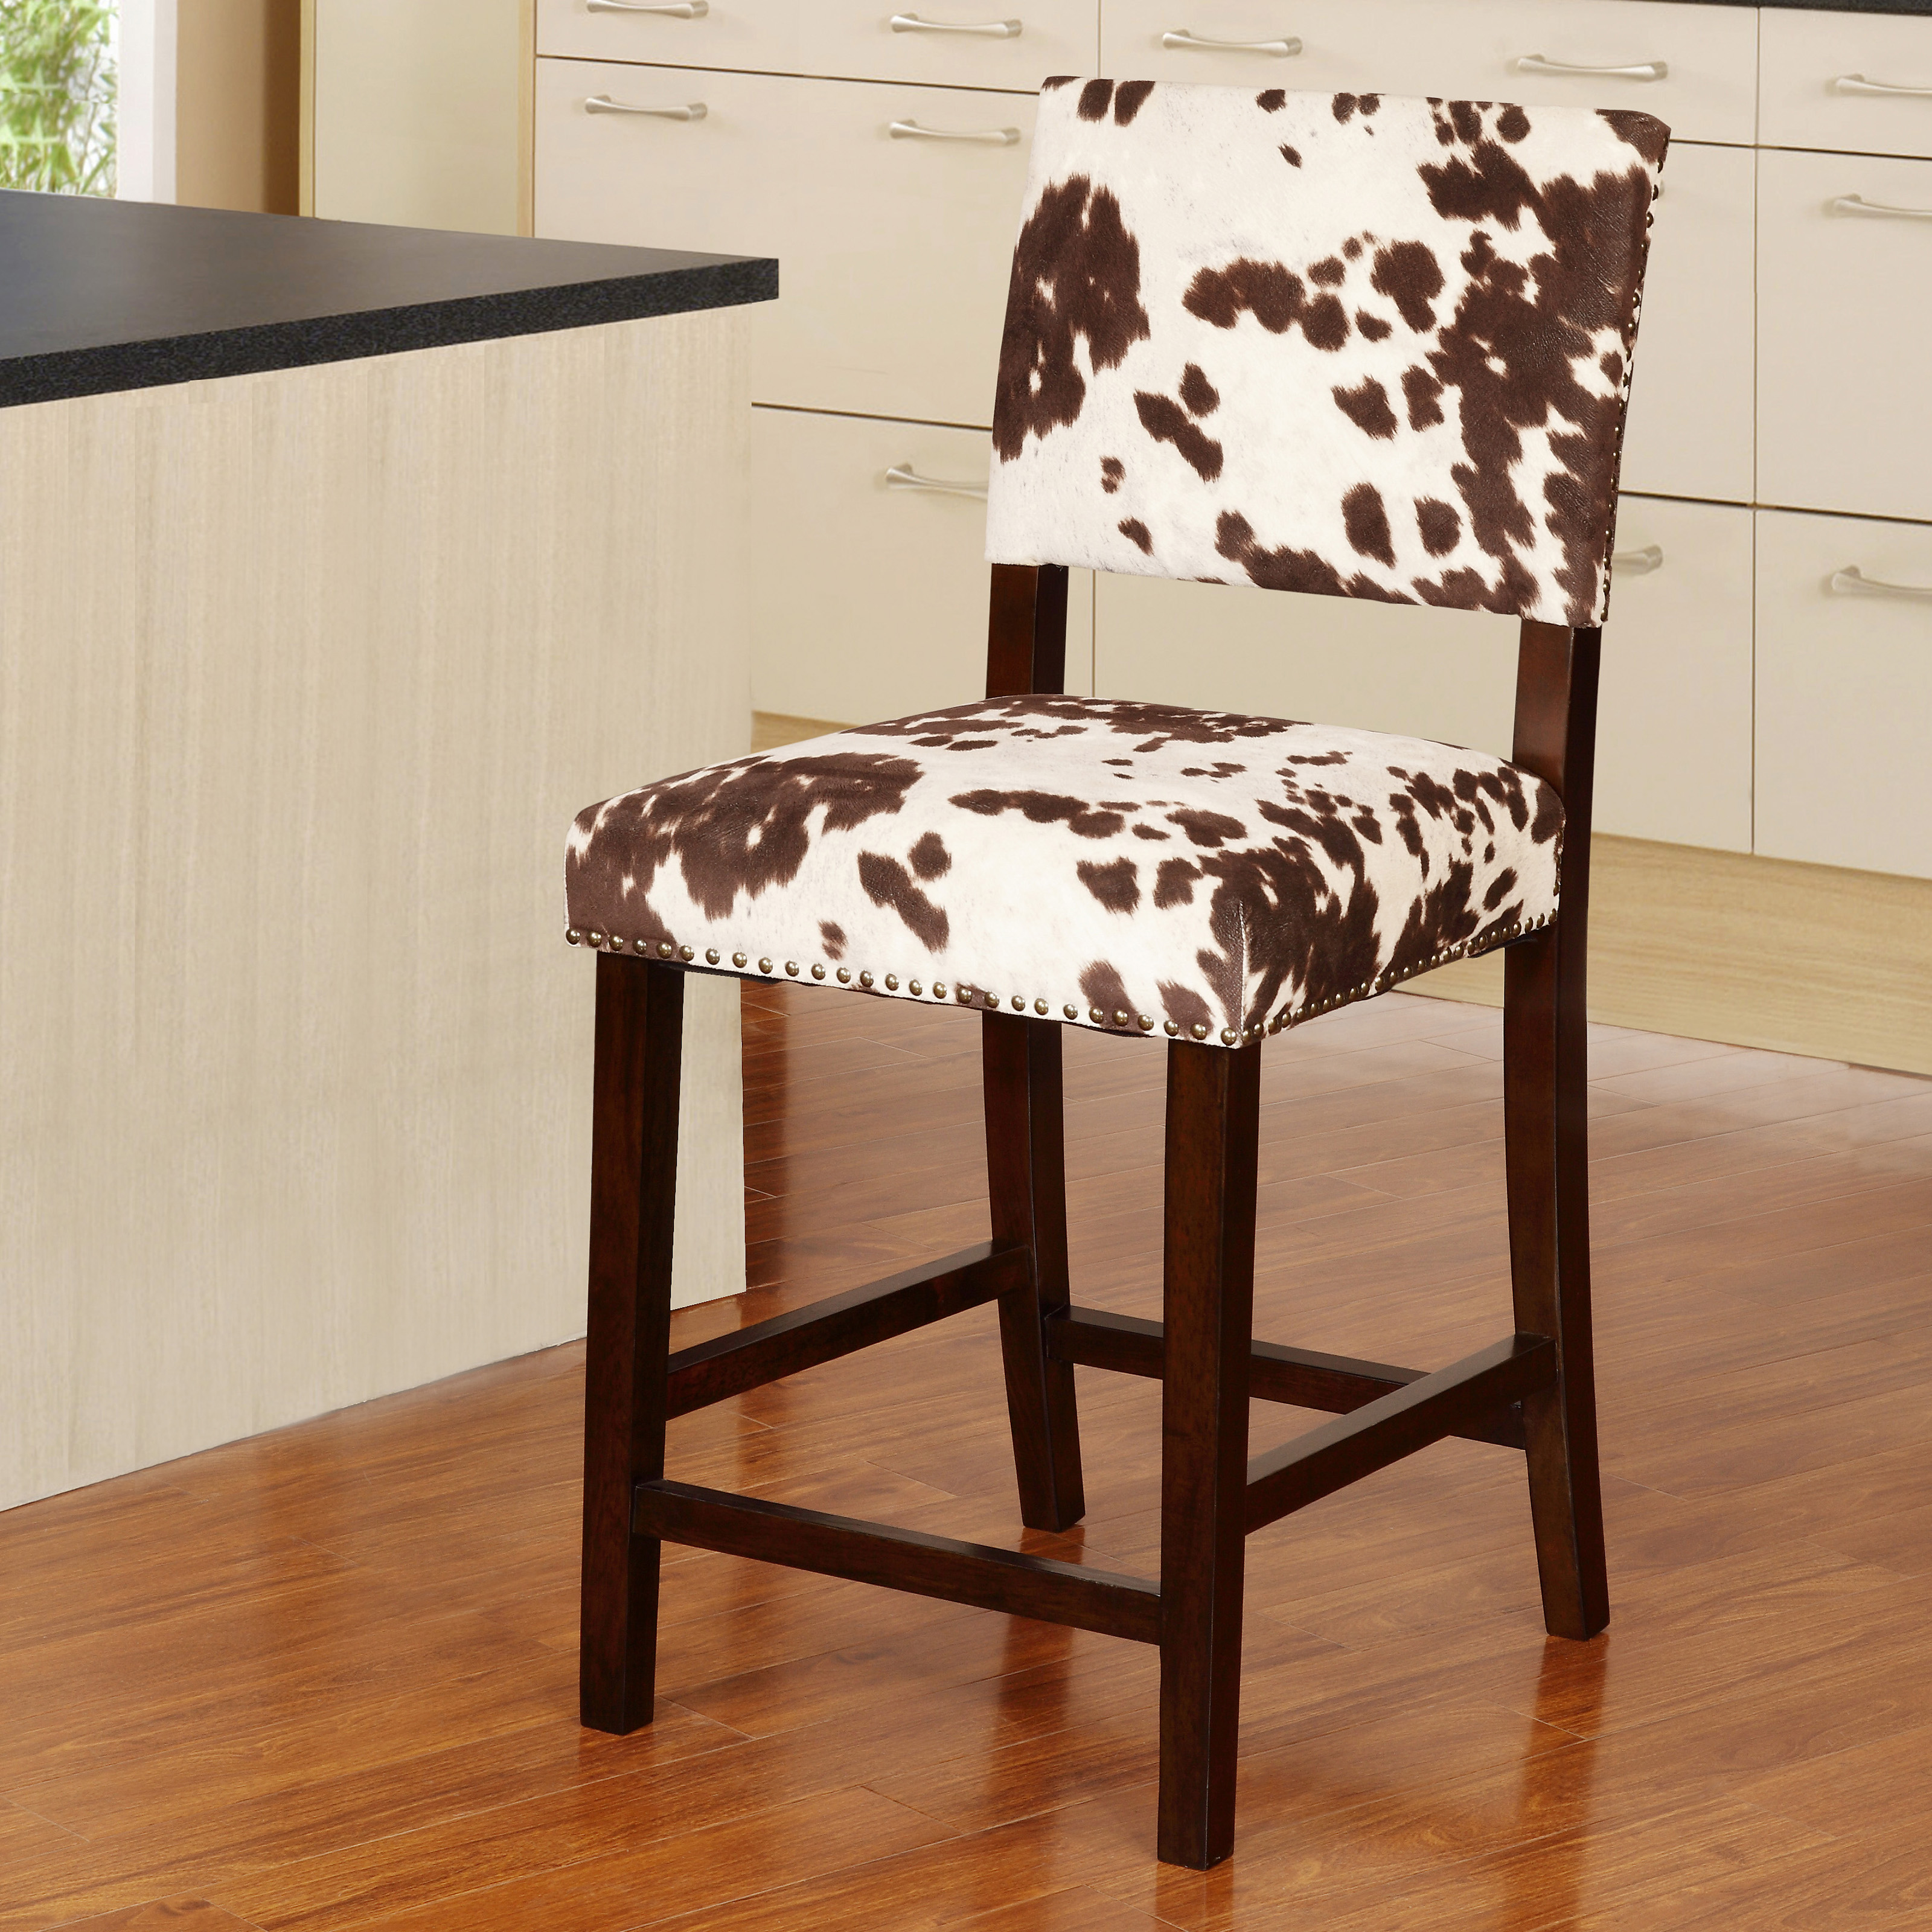 Linon Corey 24 in. Counter Stool - Udder Madness Brown | Hayneedle